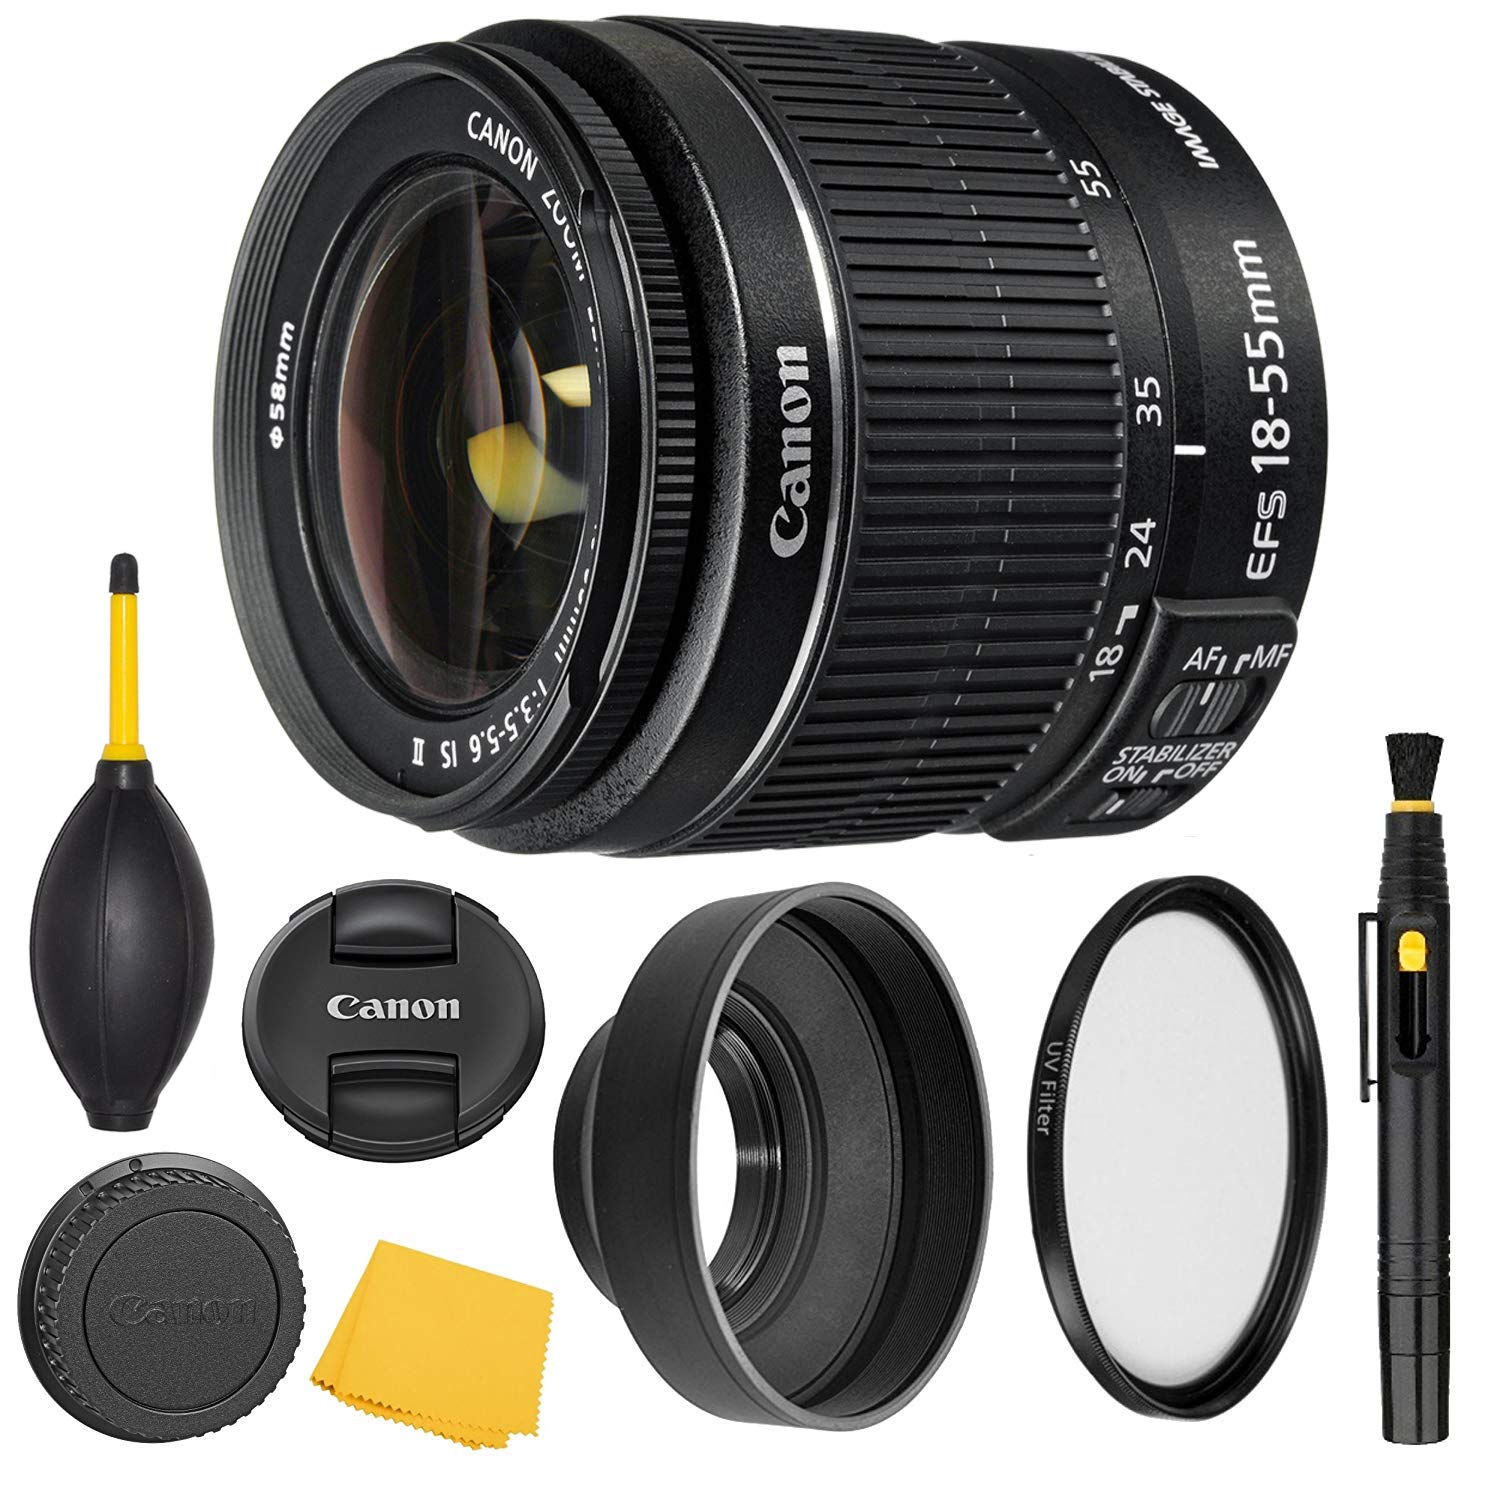 Canon EF-S 18-55mm f/3.5-5.6 is II Lens (2042B002) + AOM Pro Starter Bundle Kit - International Version (1 Year AOM Warranty) by AOM